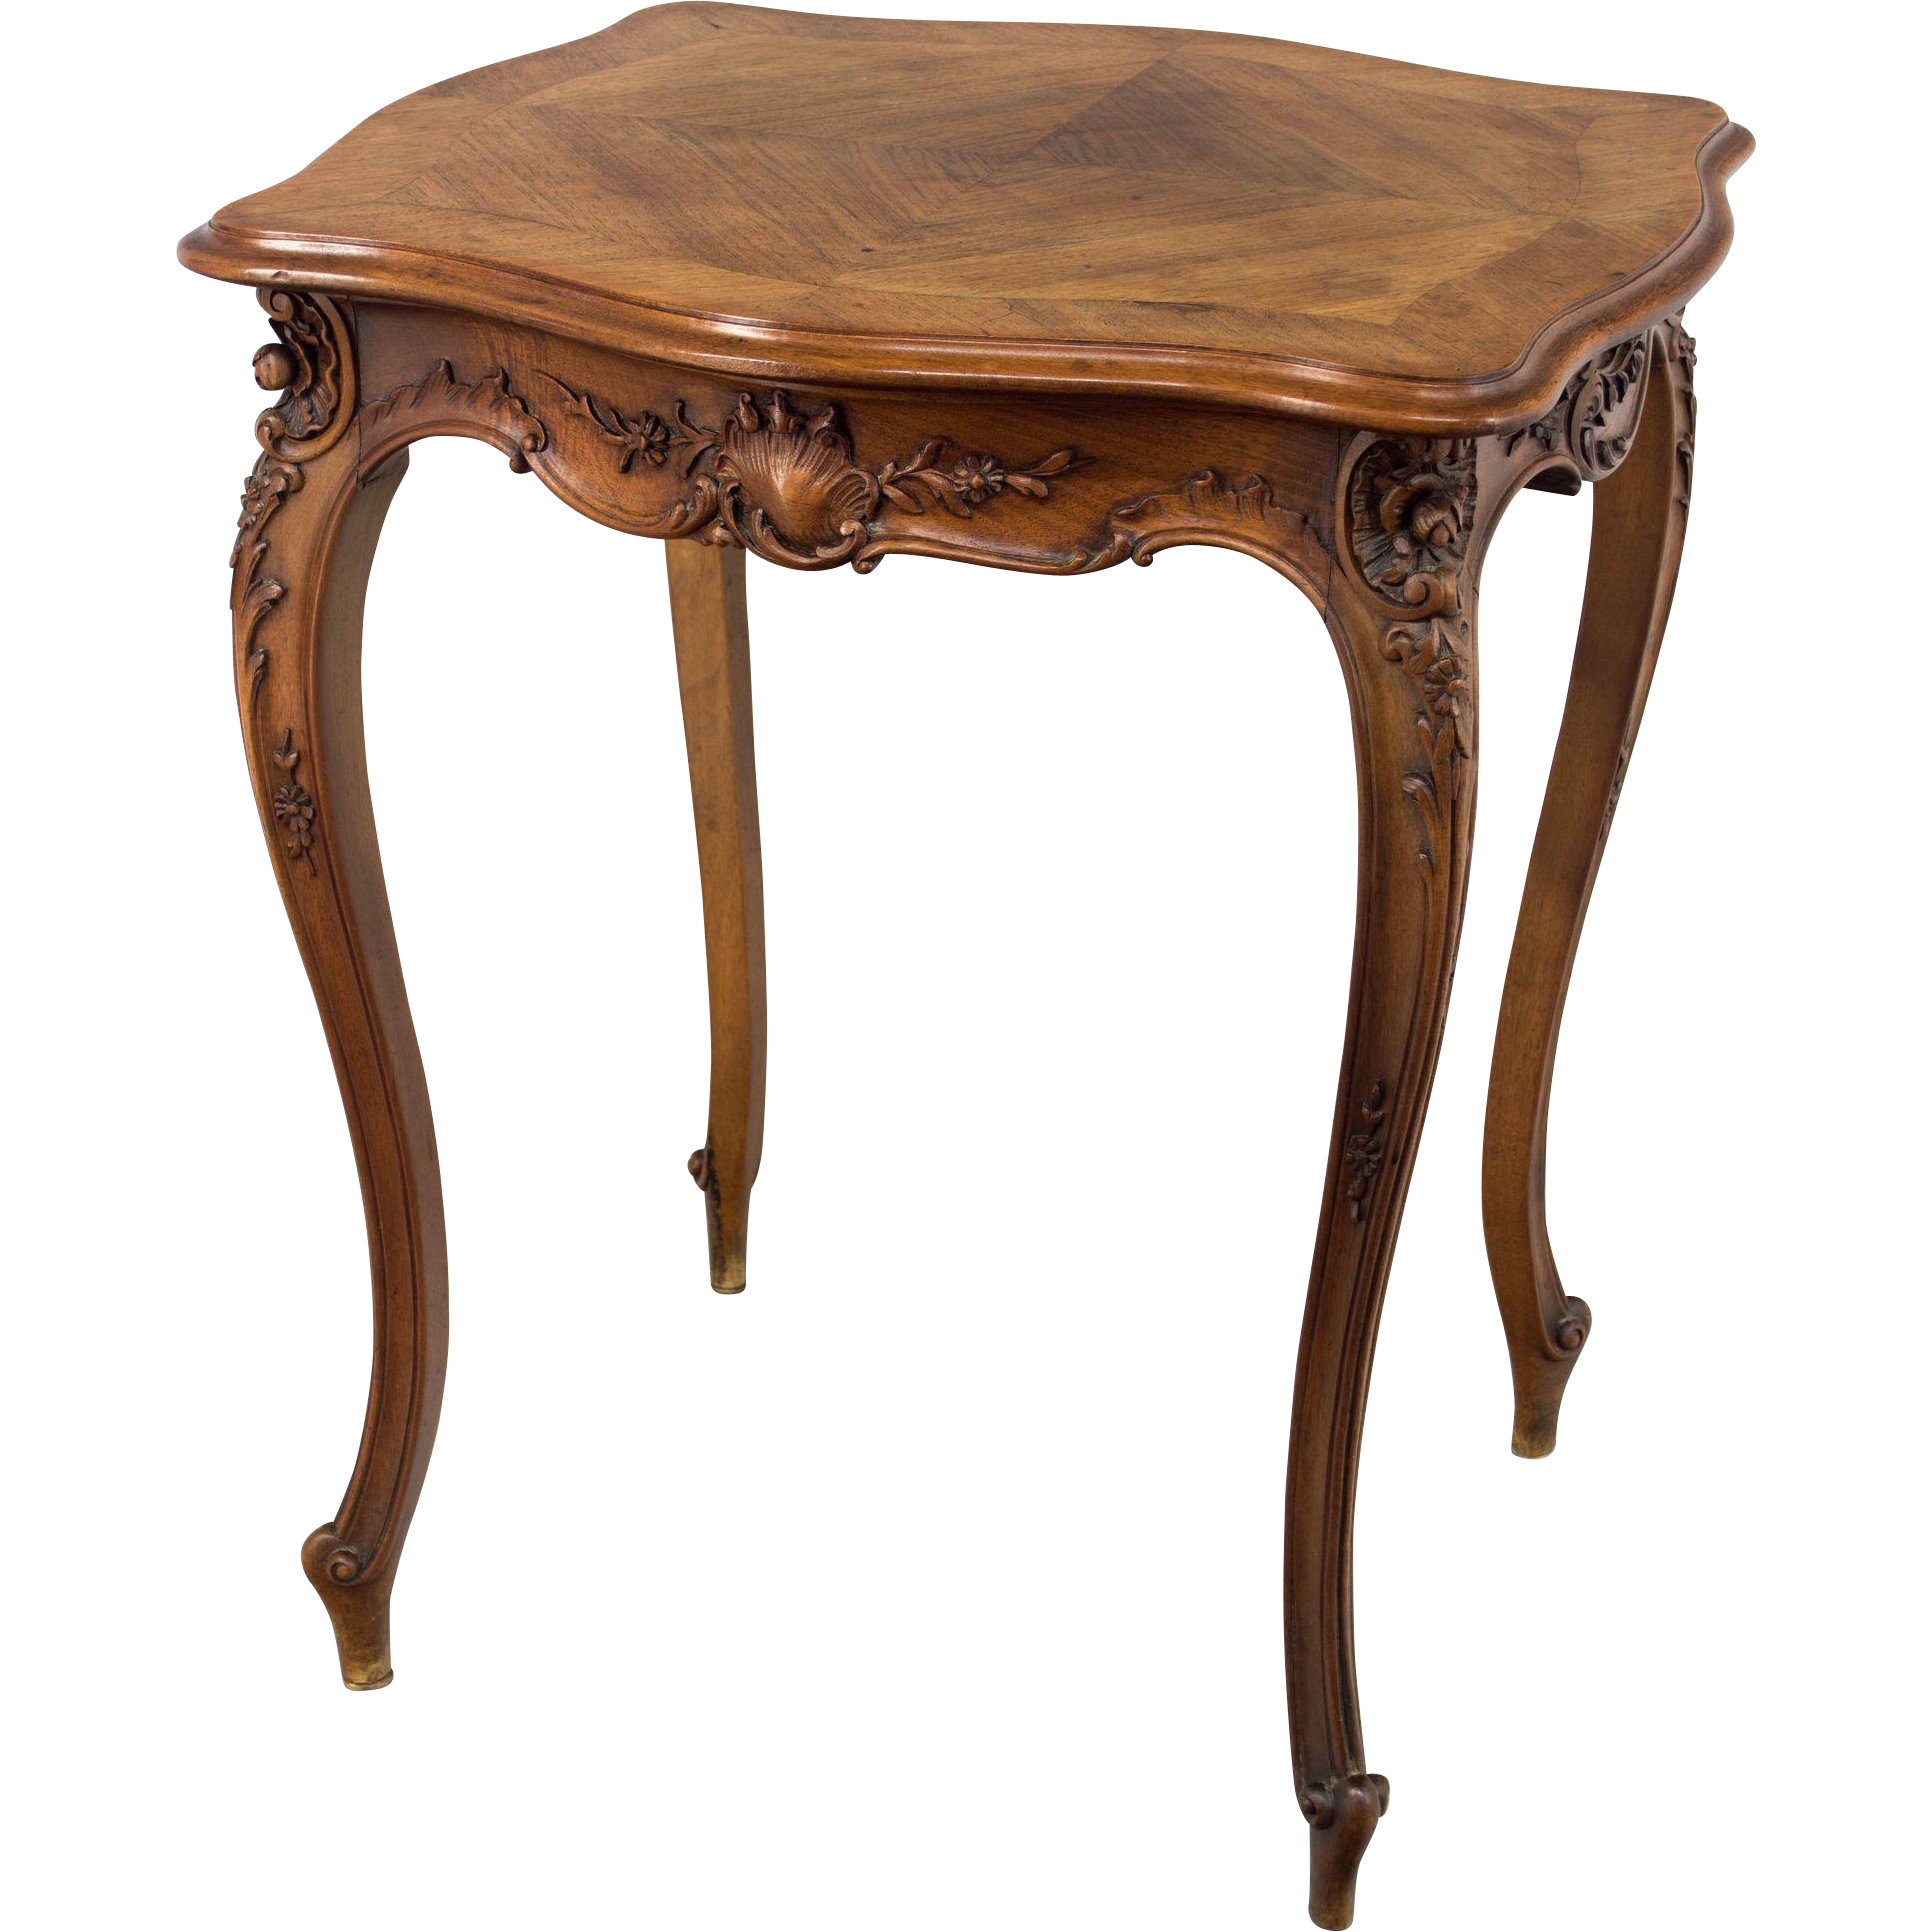 louis xv style side table sold on ruby lane. Black Bedroom Furniture Sets. Home Design Ideas